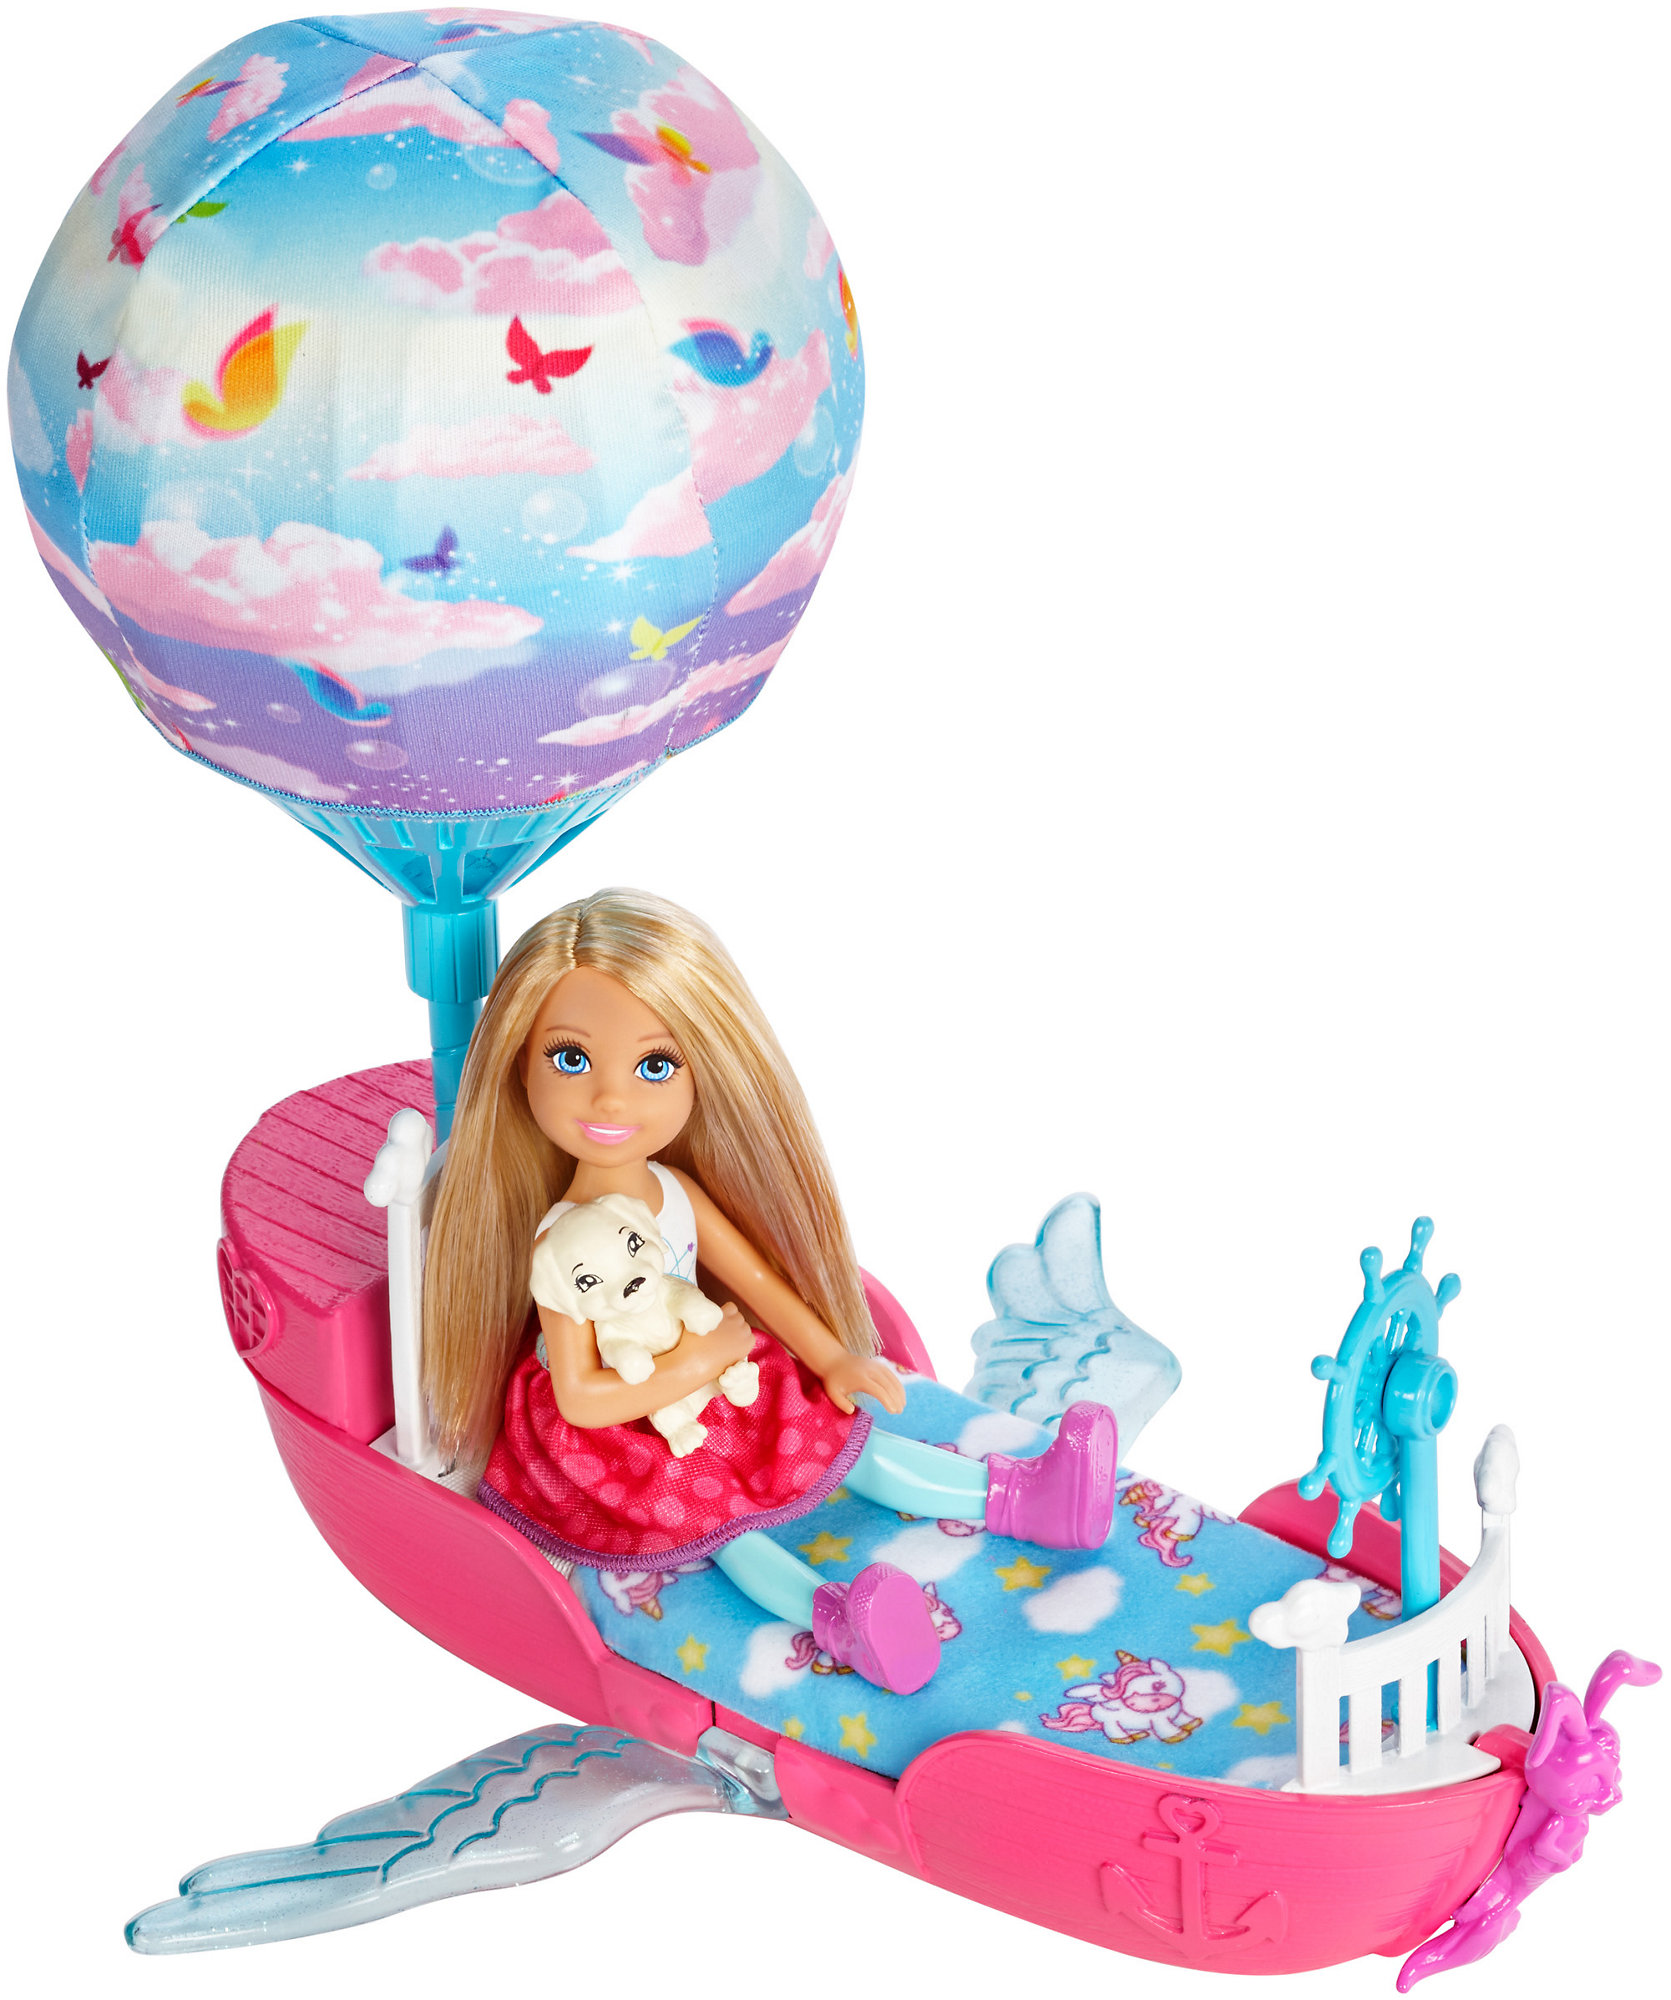 Barbie Dreamtopia Chelsea Doll and Magical Dreamboat by Mattel